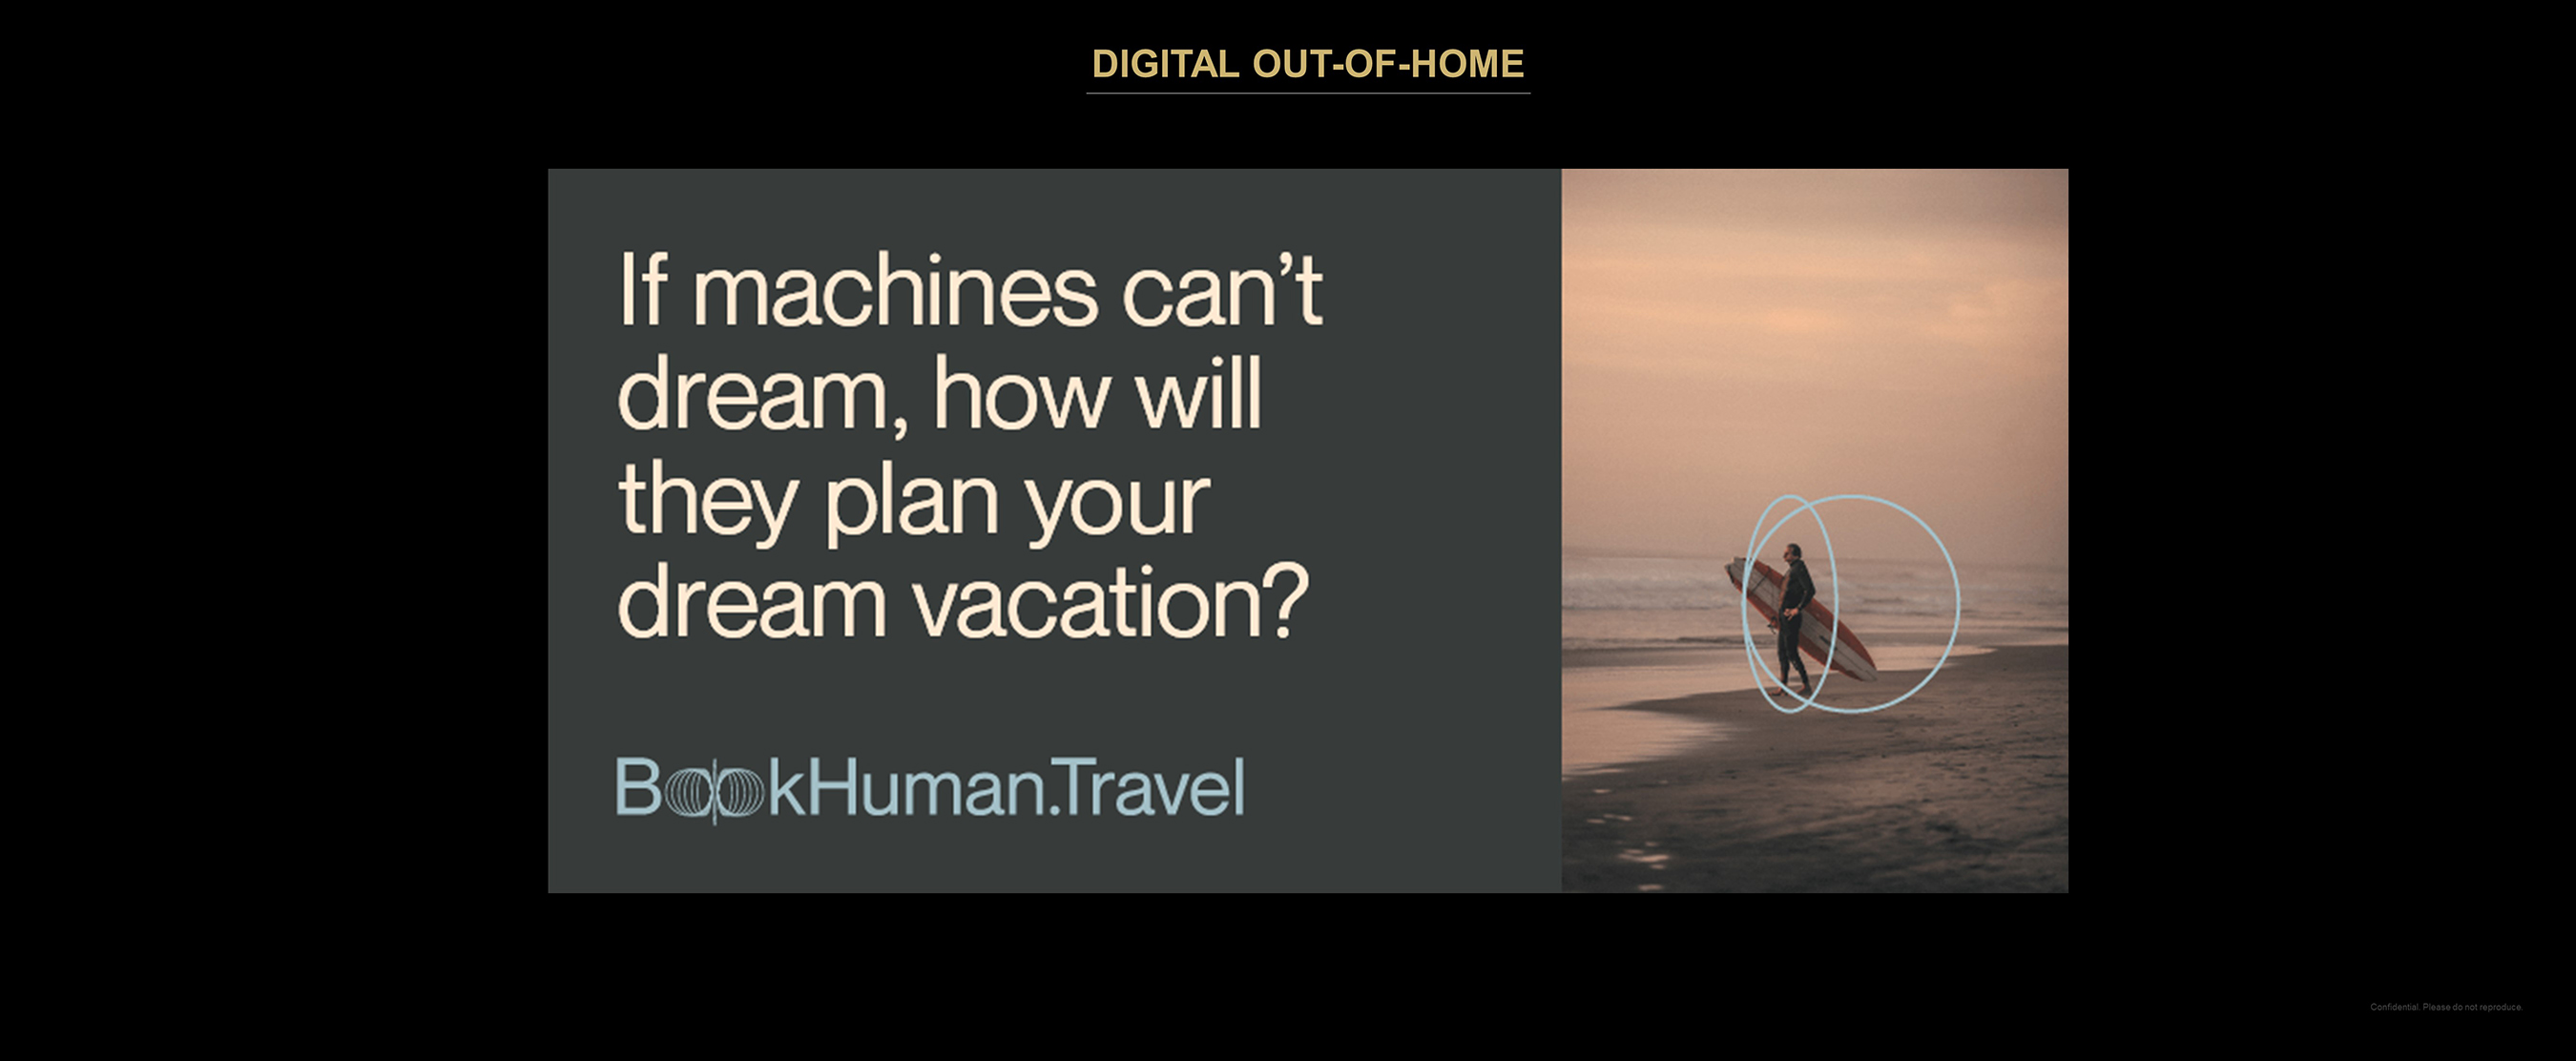 Internova Travel Group, one of the industry's largest travel services companies, announced the launch of a new advertising campaign to remind consumers that choosing to book travel through humans may be the best travel decision they could ever make. Visit BookHuman.Travel for more information.